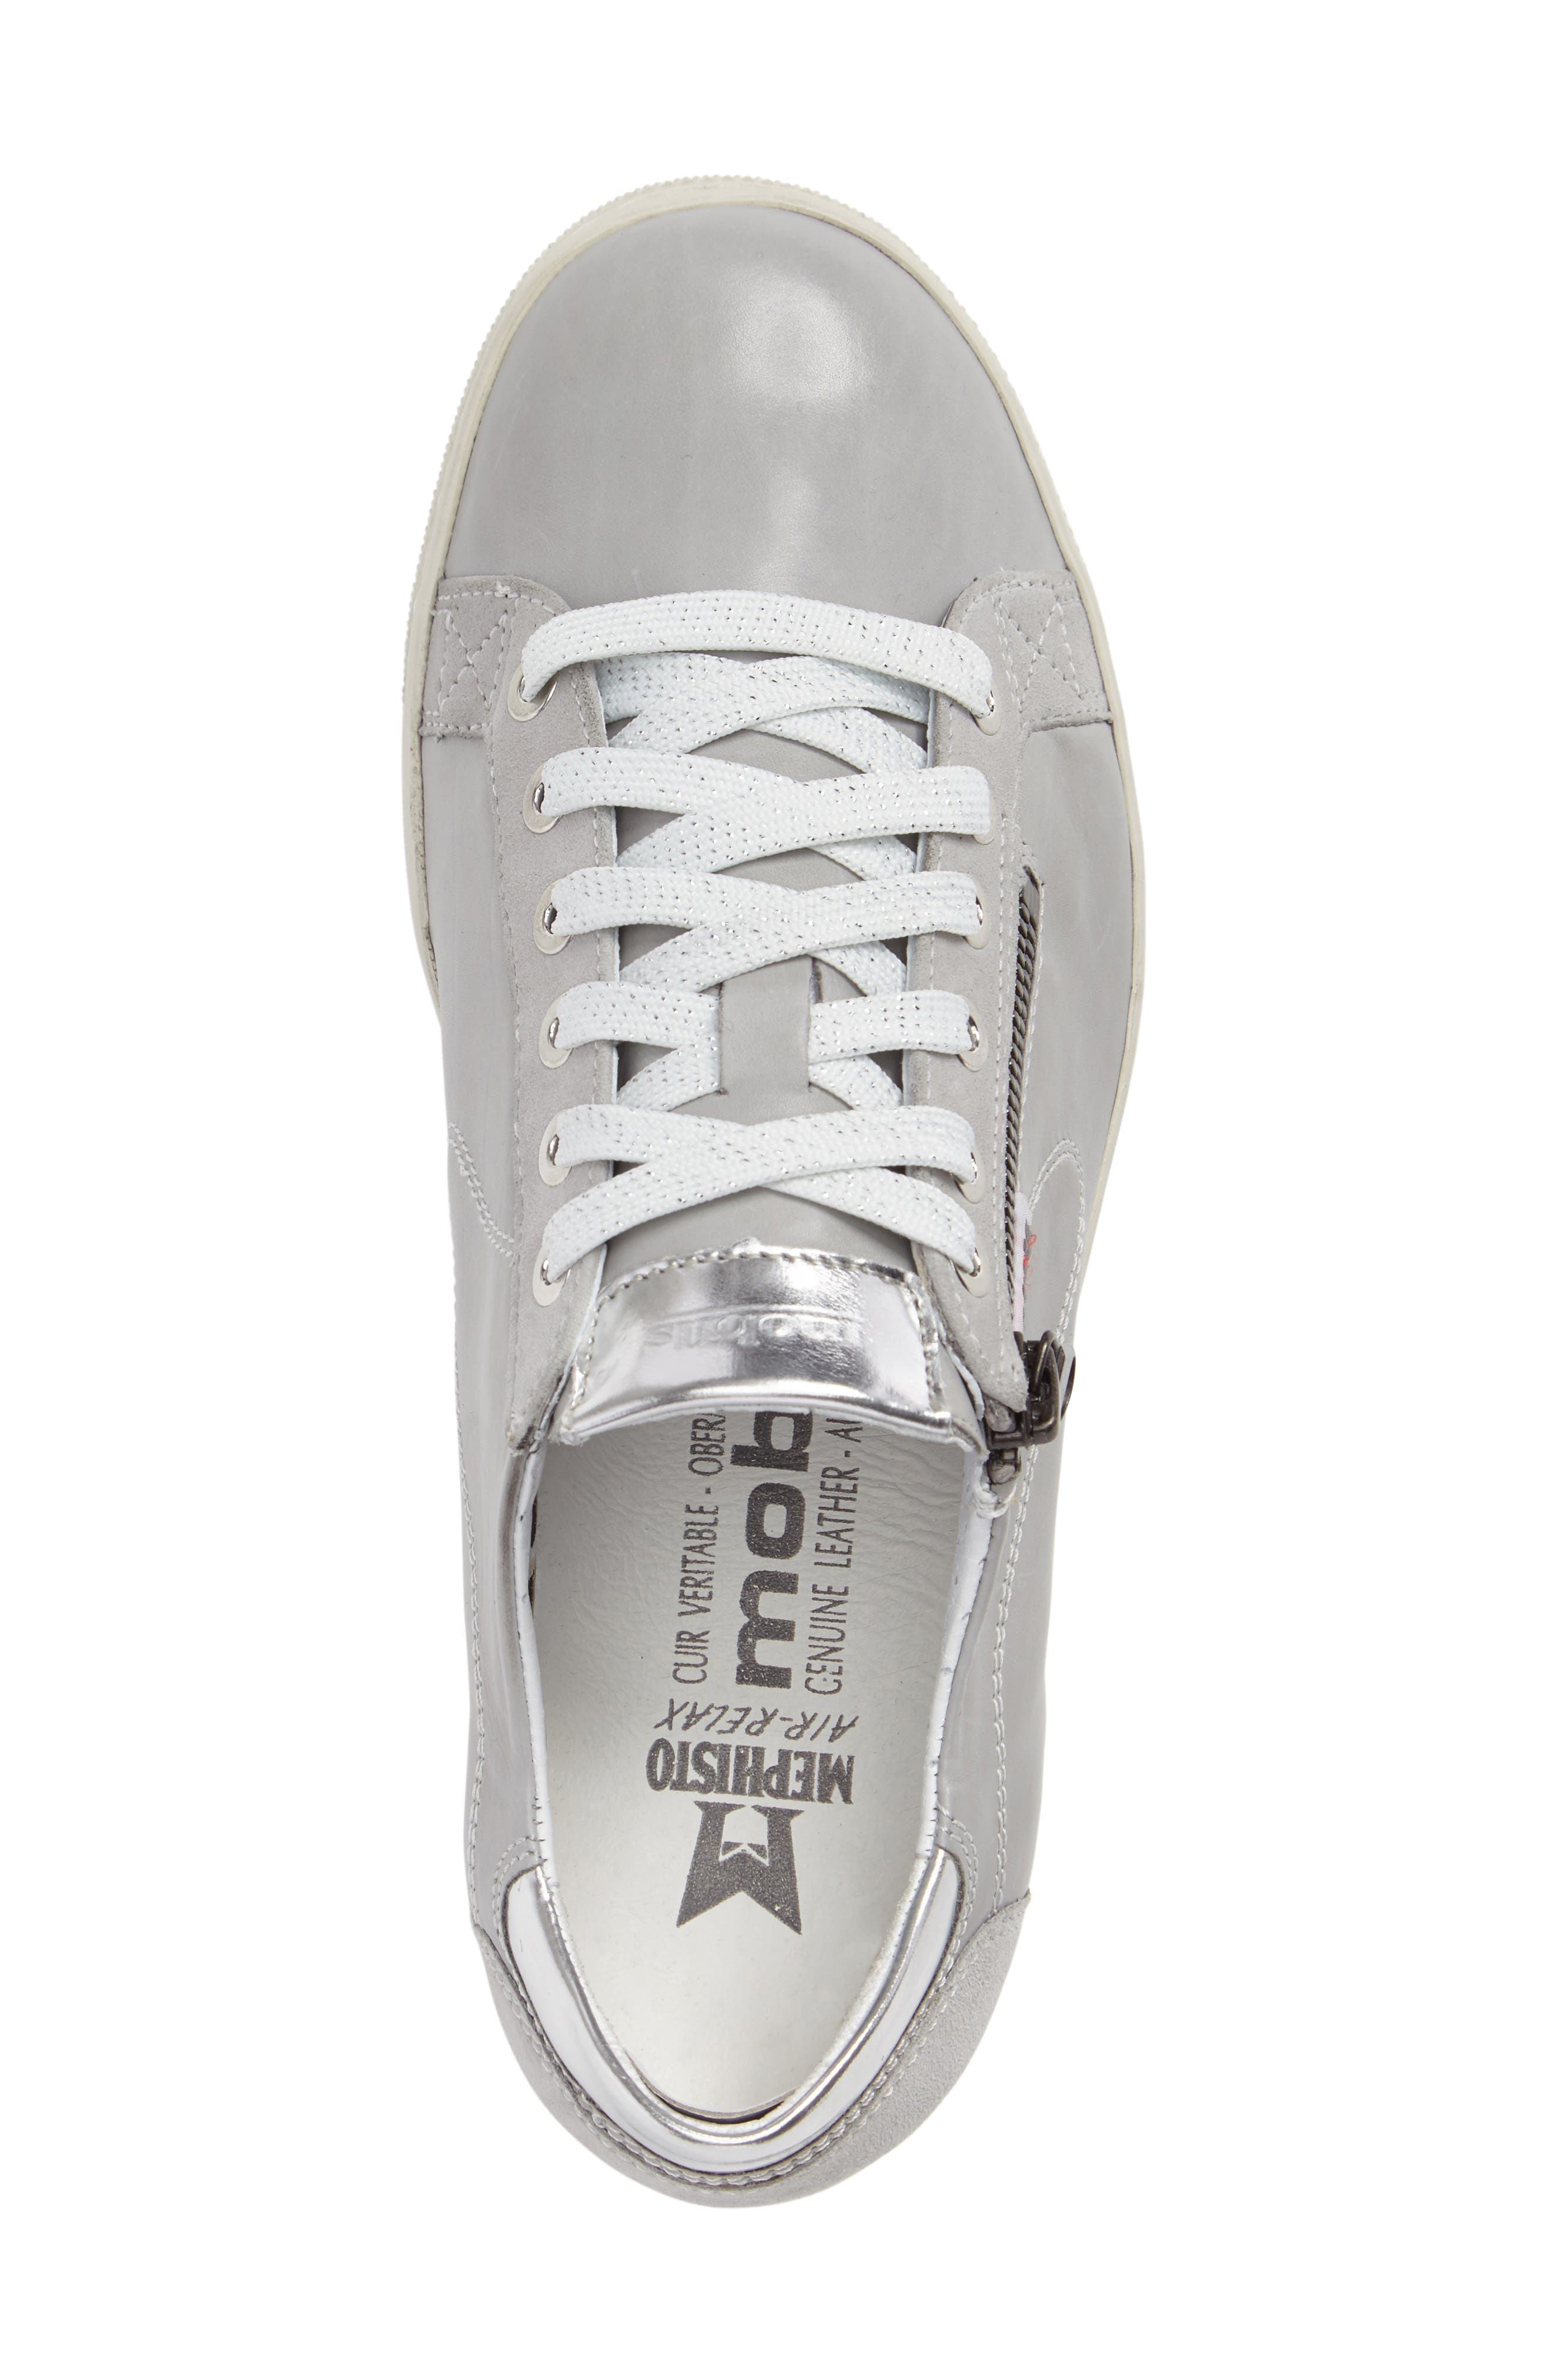 Hawai Sneaker,                             Alternate thumbnail 3, color,                             LIGHT GREY CALFSKIN LEATHER